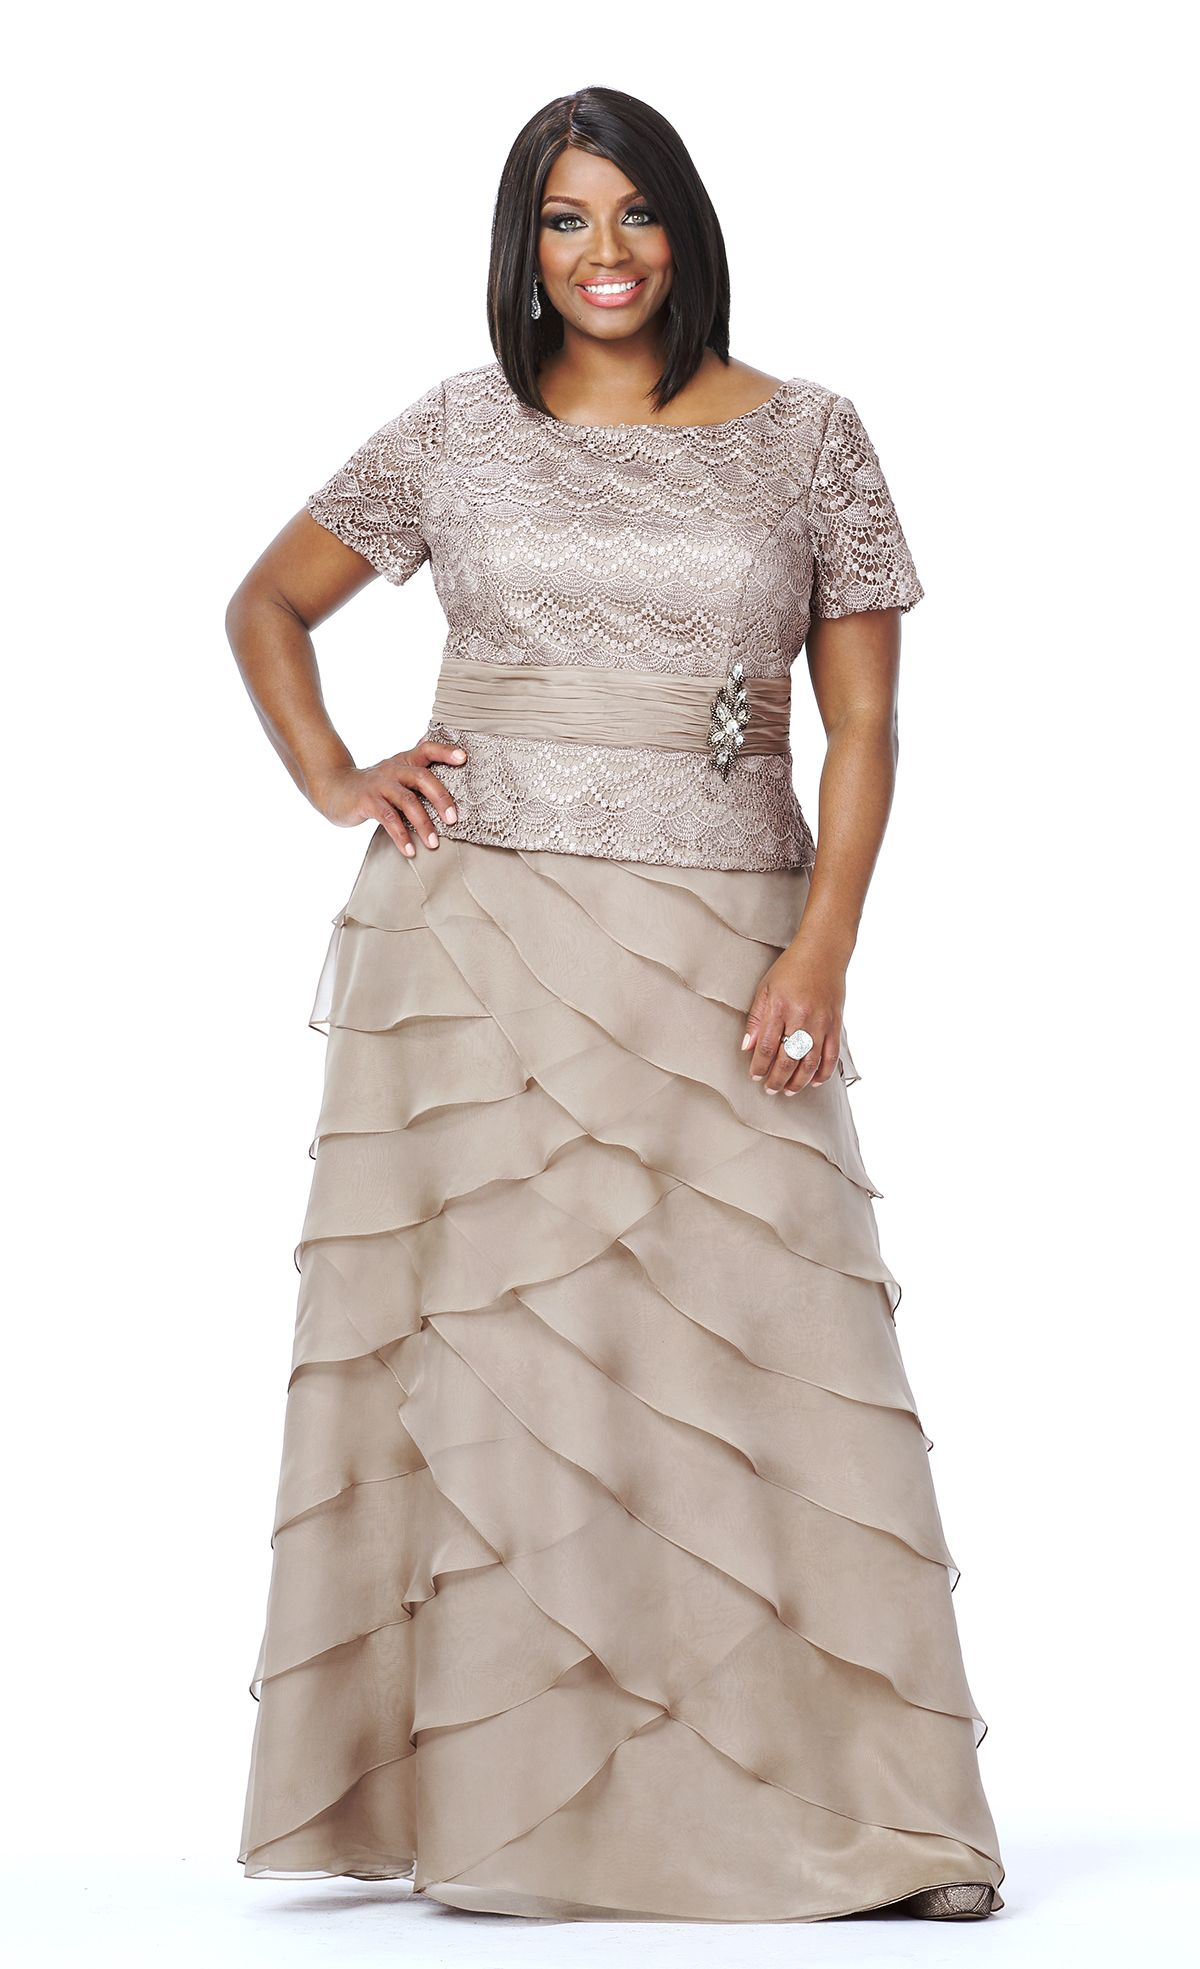 ce8a518a75 Plus Size Female Fancy Dress Key  5978370938. Taupe Tiered Mother of the Bride  gown